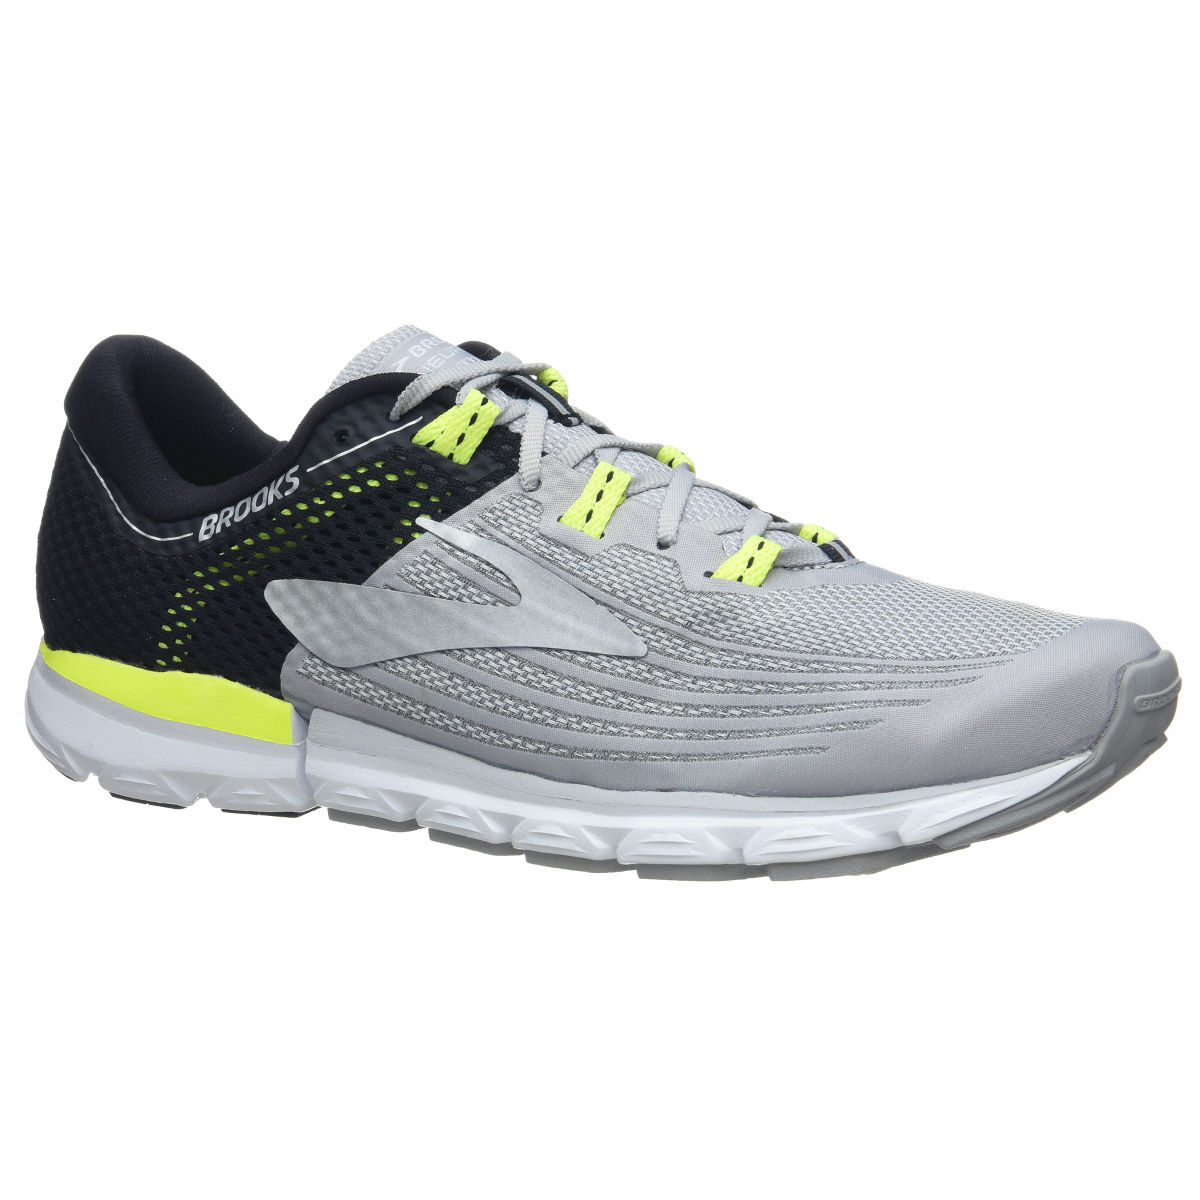 Brooks Neuro 3 Shoes - Zapatillas de running